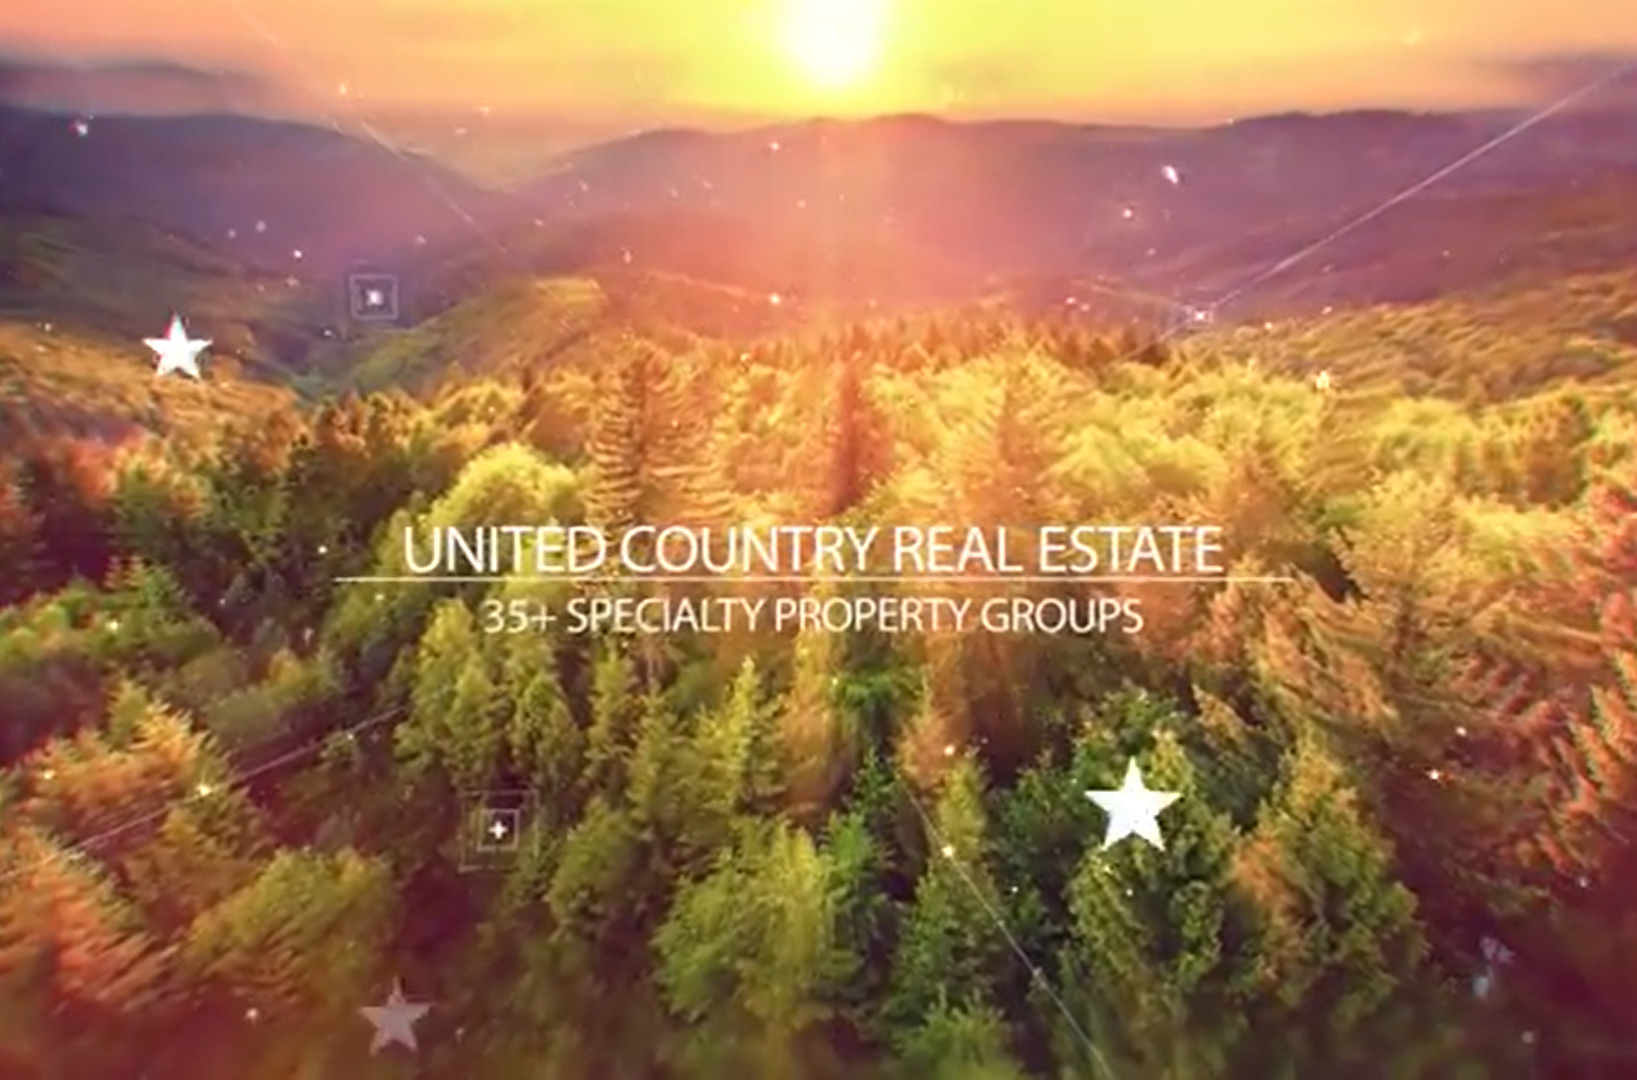 United Country Real Estate Continues to Lead in Innovative Marketing